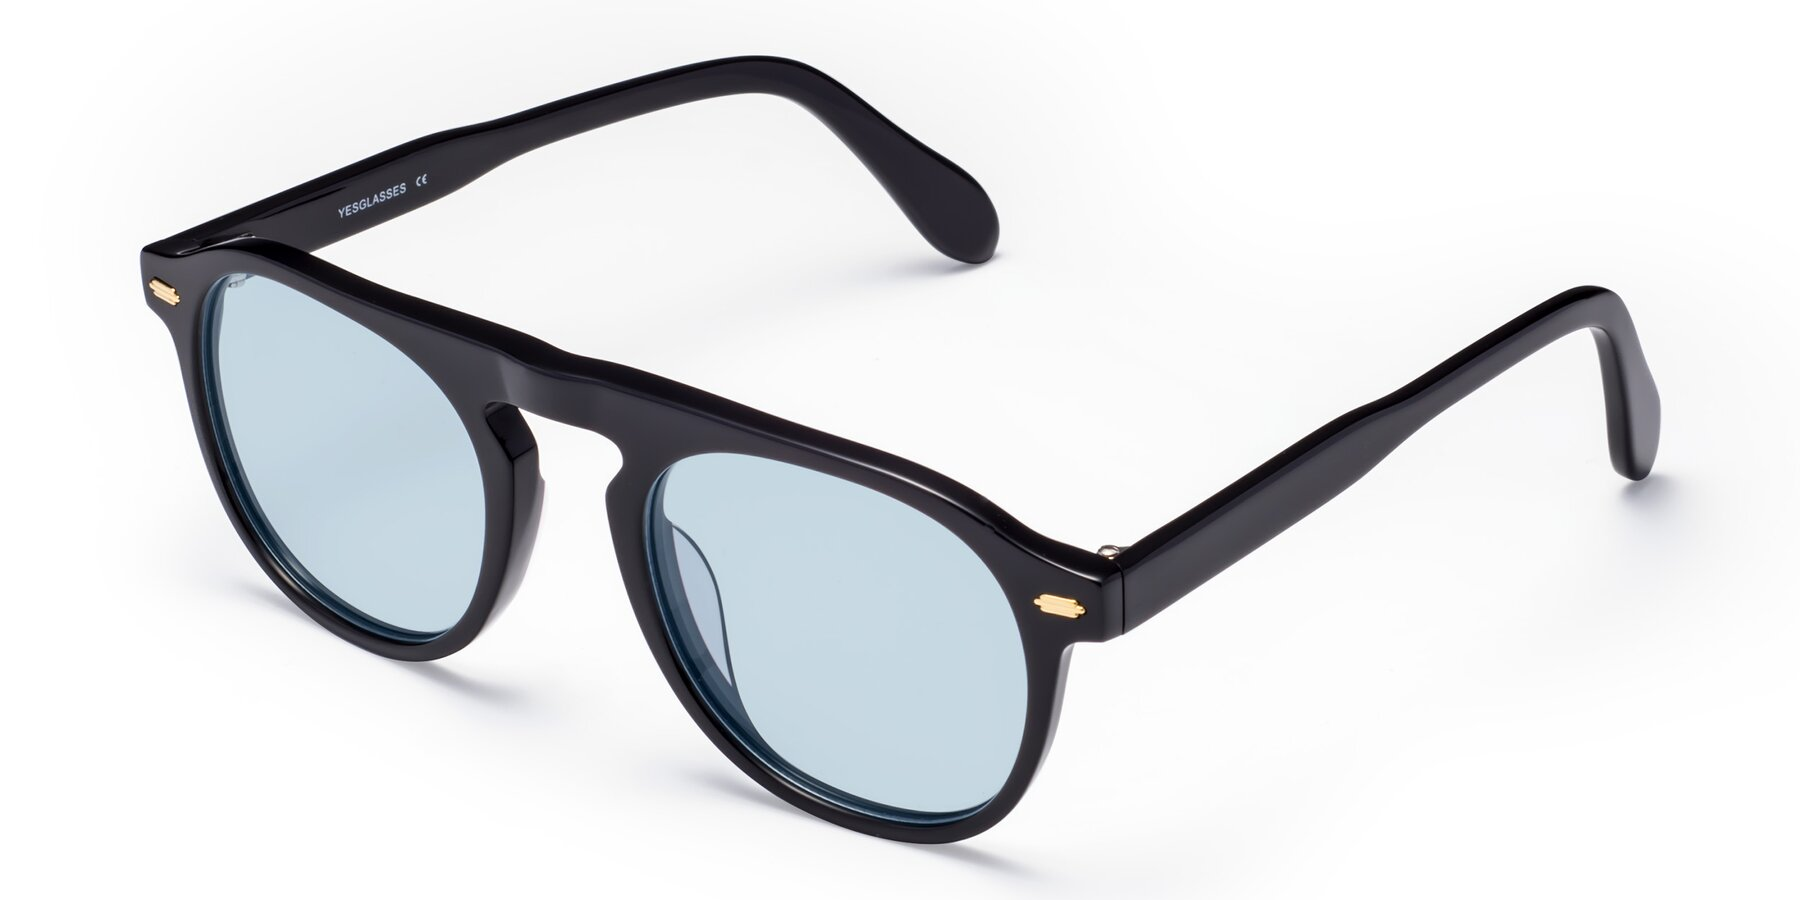 Angle of Mufasa in Black with Light Blue Tinted Lenses